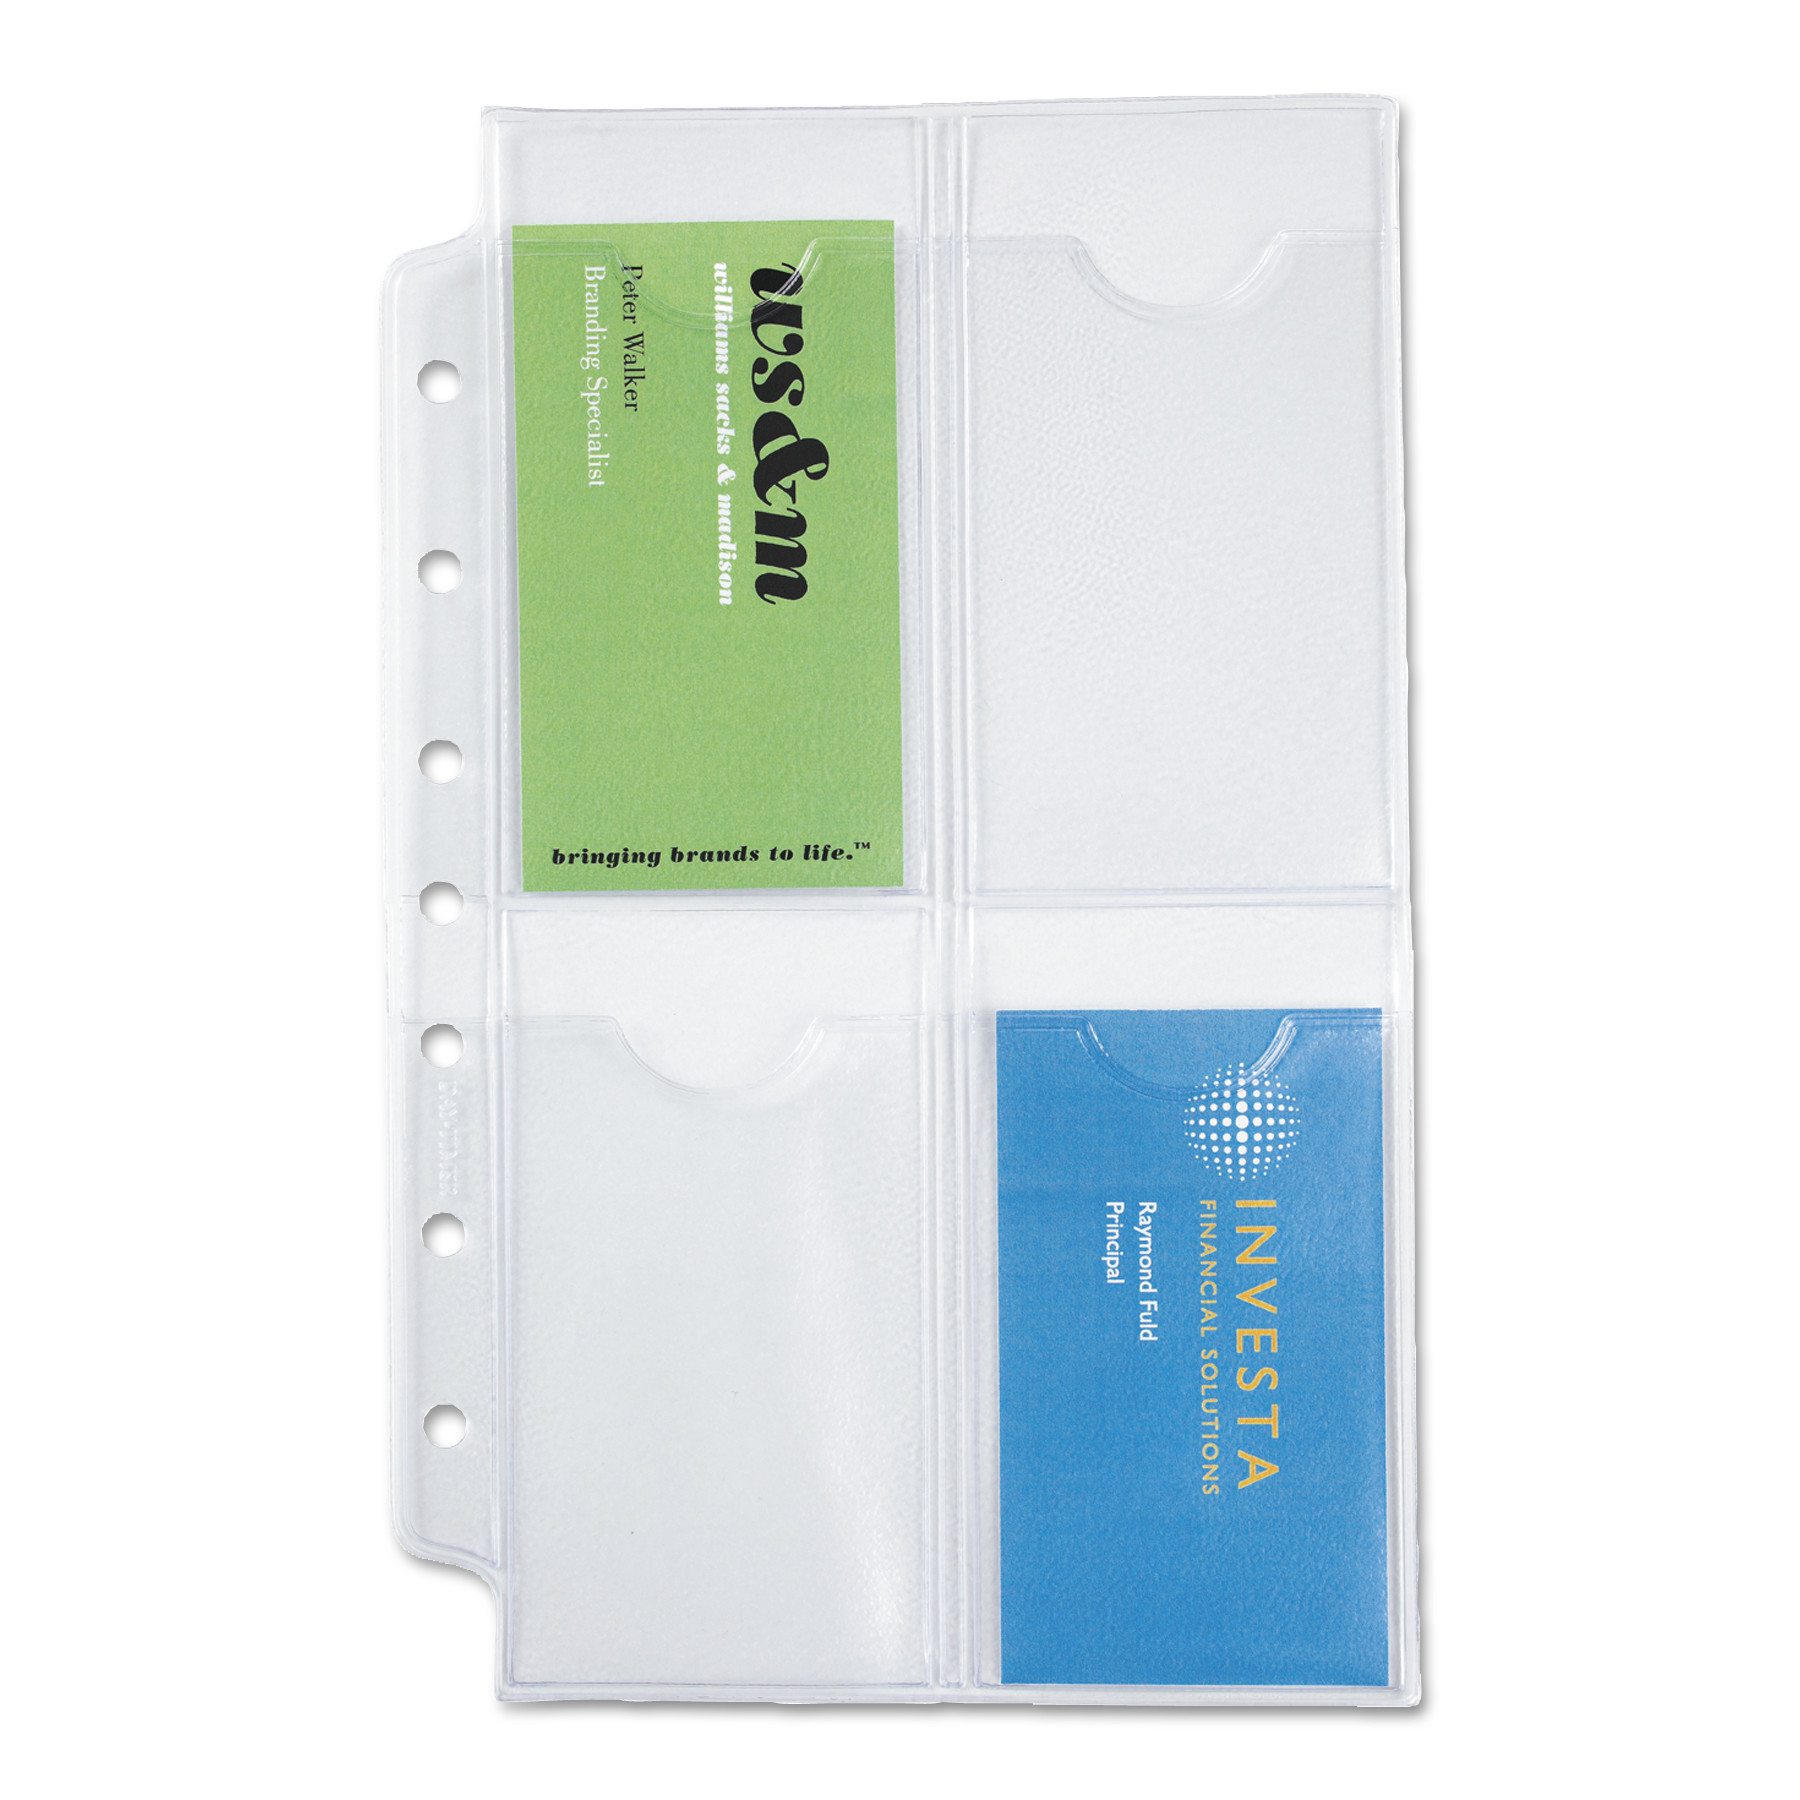 DayTimer Business Card Holders For Looseleaf Planners   X